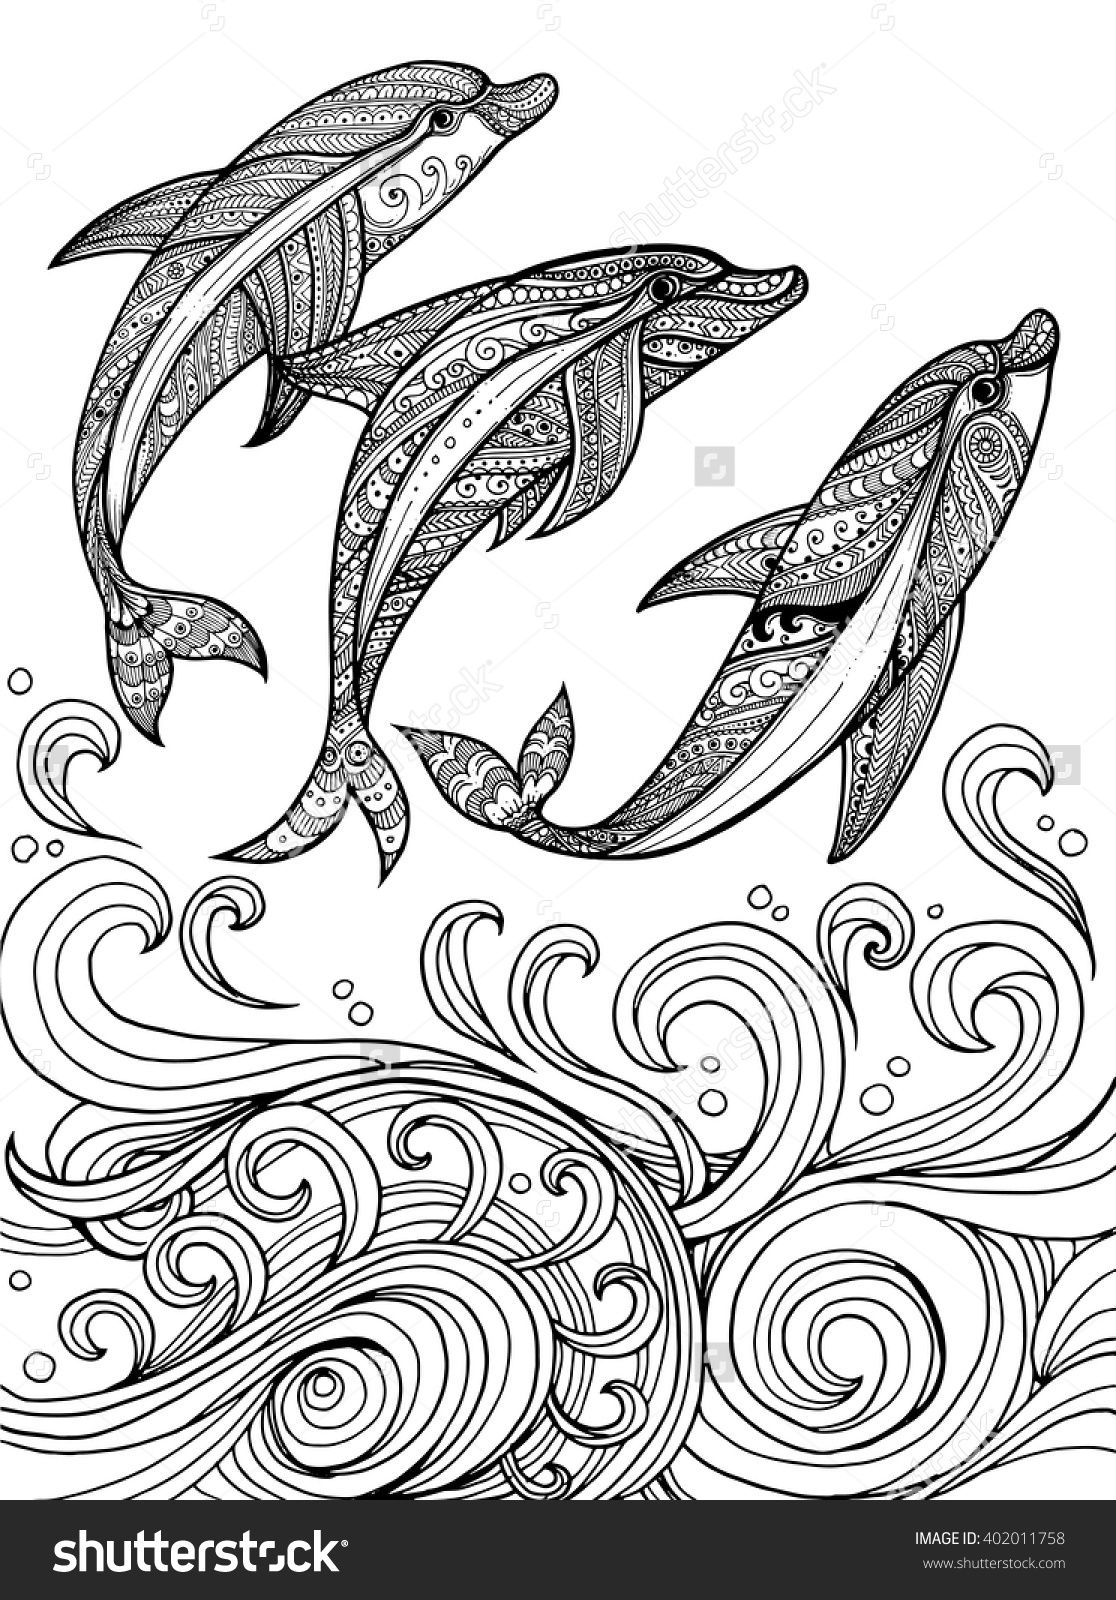 dolphin zentangle google search zentangle pins dolphin coloring pages coloring pages. Black Bedroom Furniture Sets. Home Design Ideas